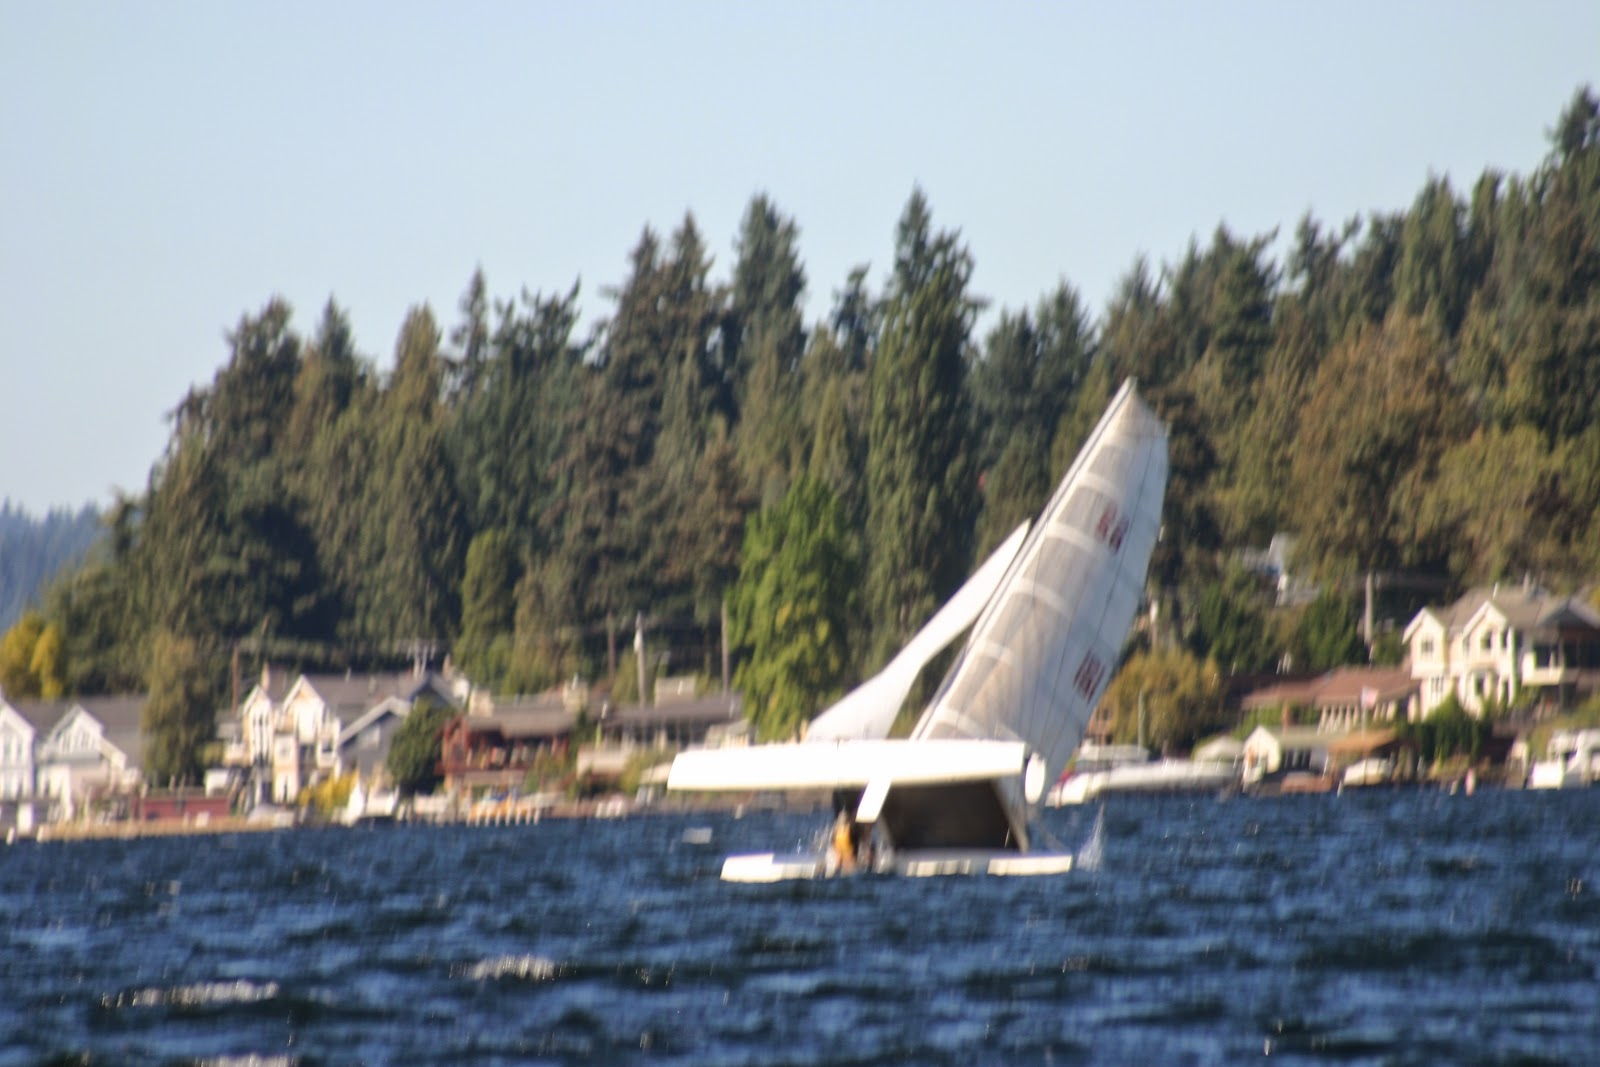 Righting a capsized hobie cat 3